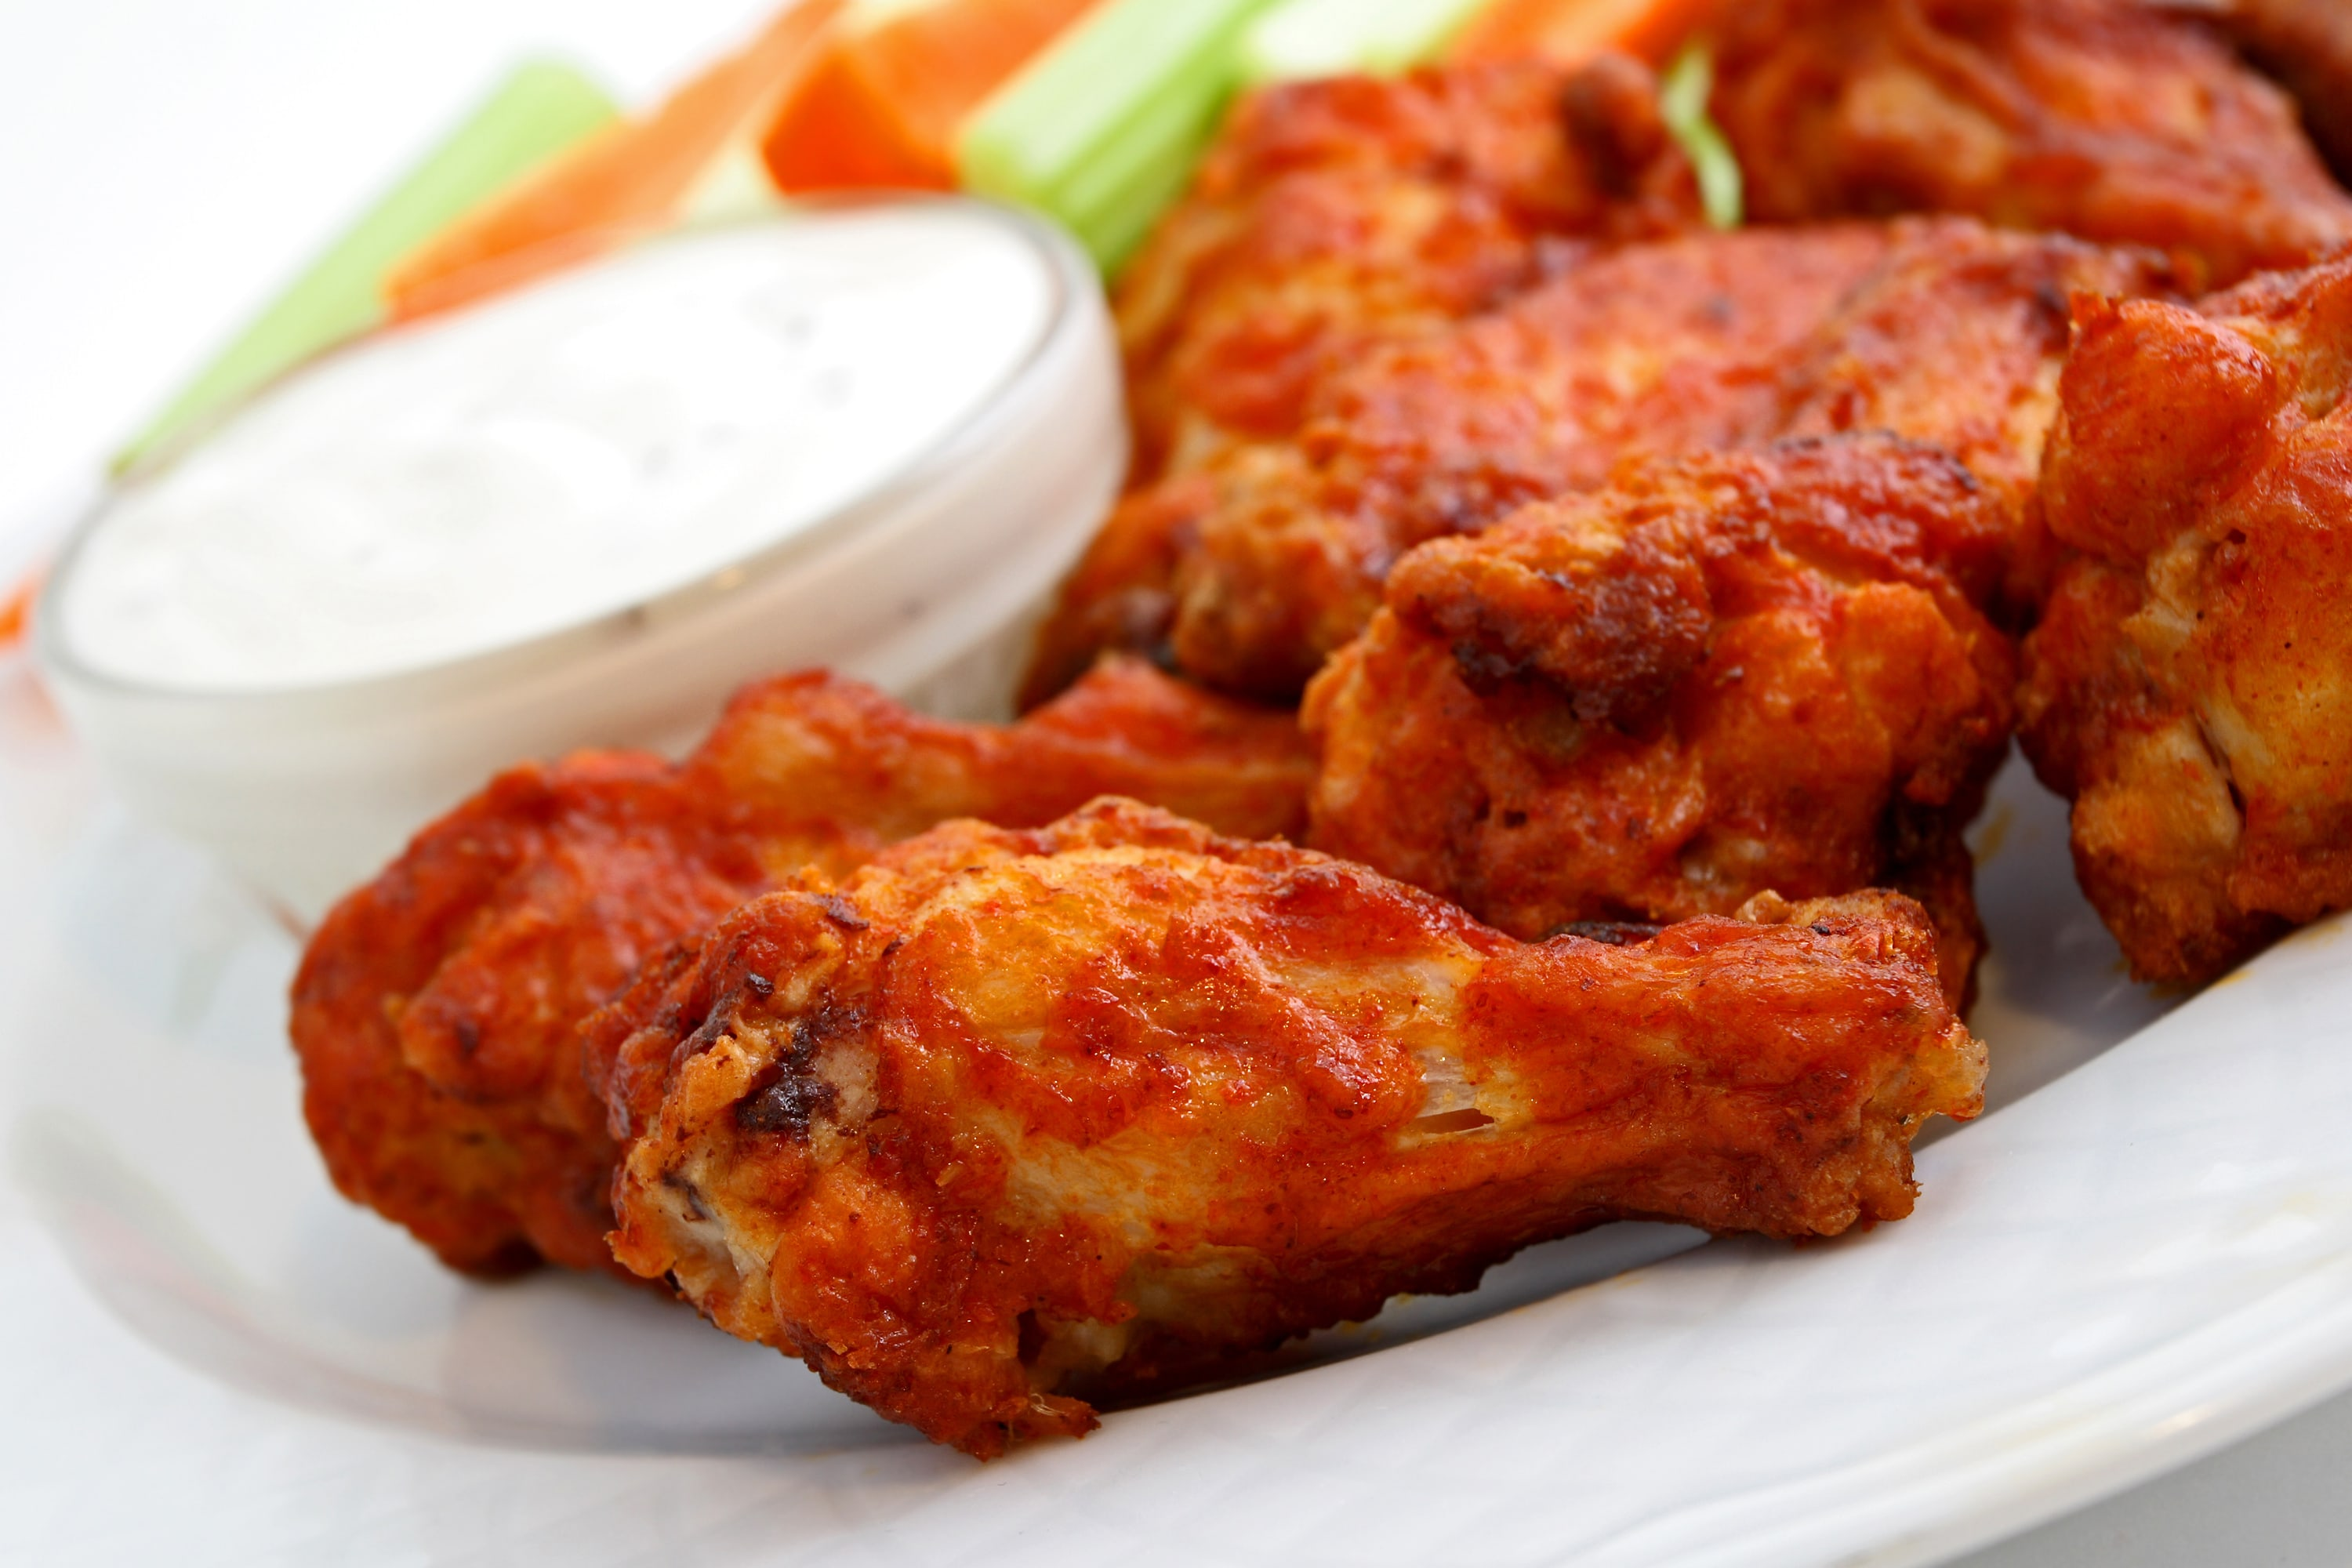 Buffalo chicken wings with bleu cheese and celery